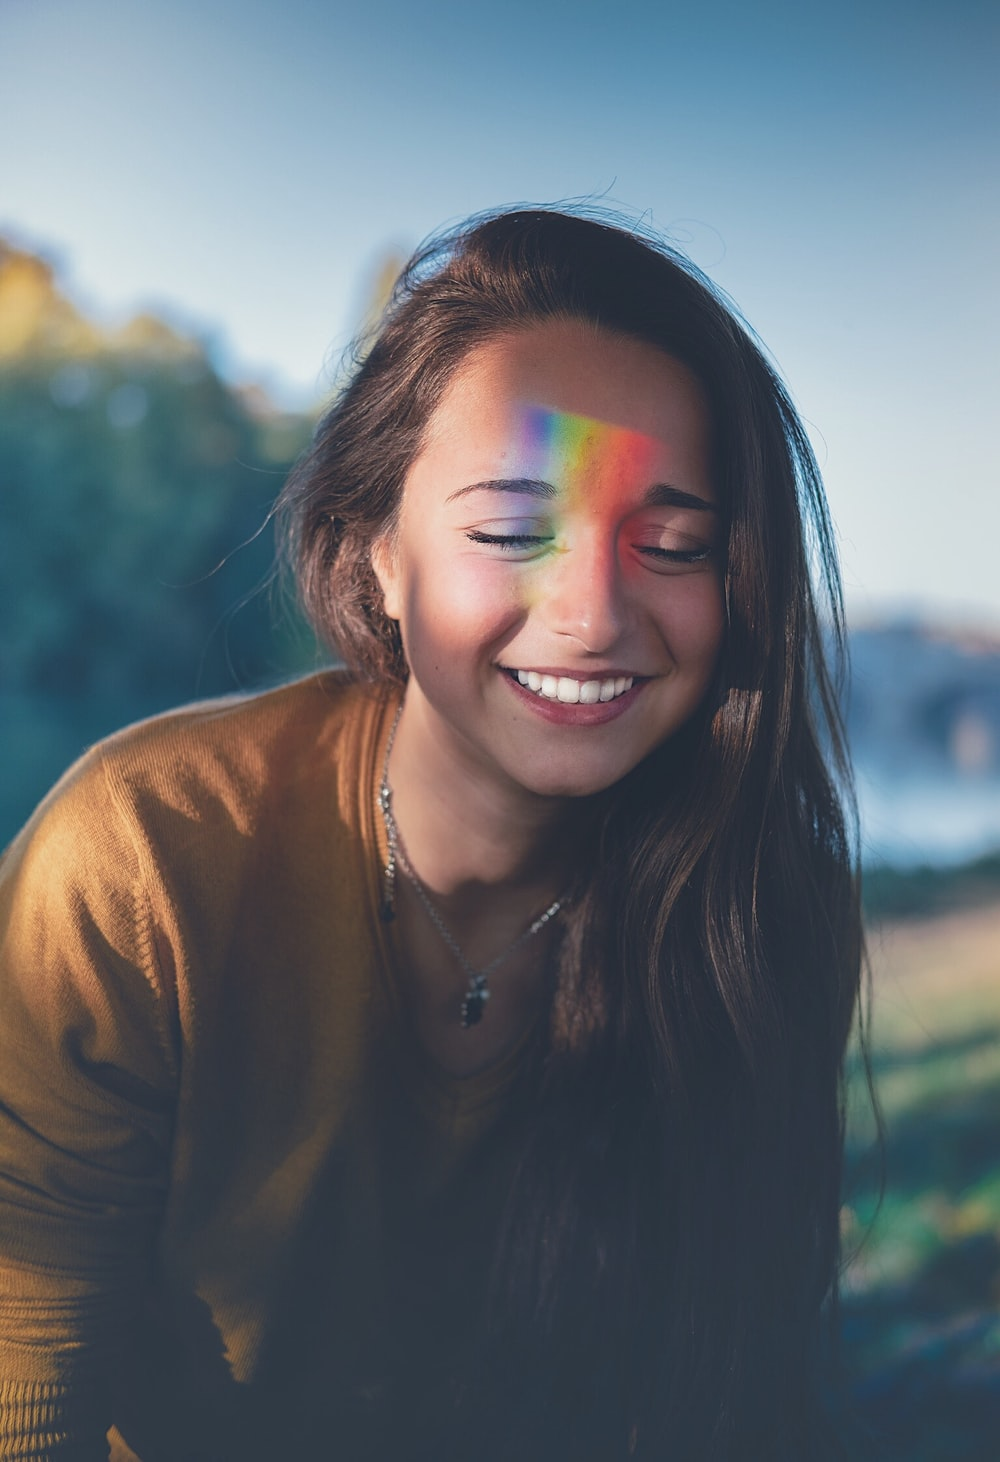 shallow focus photography of smiling woman